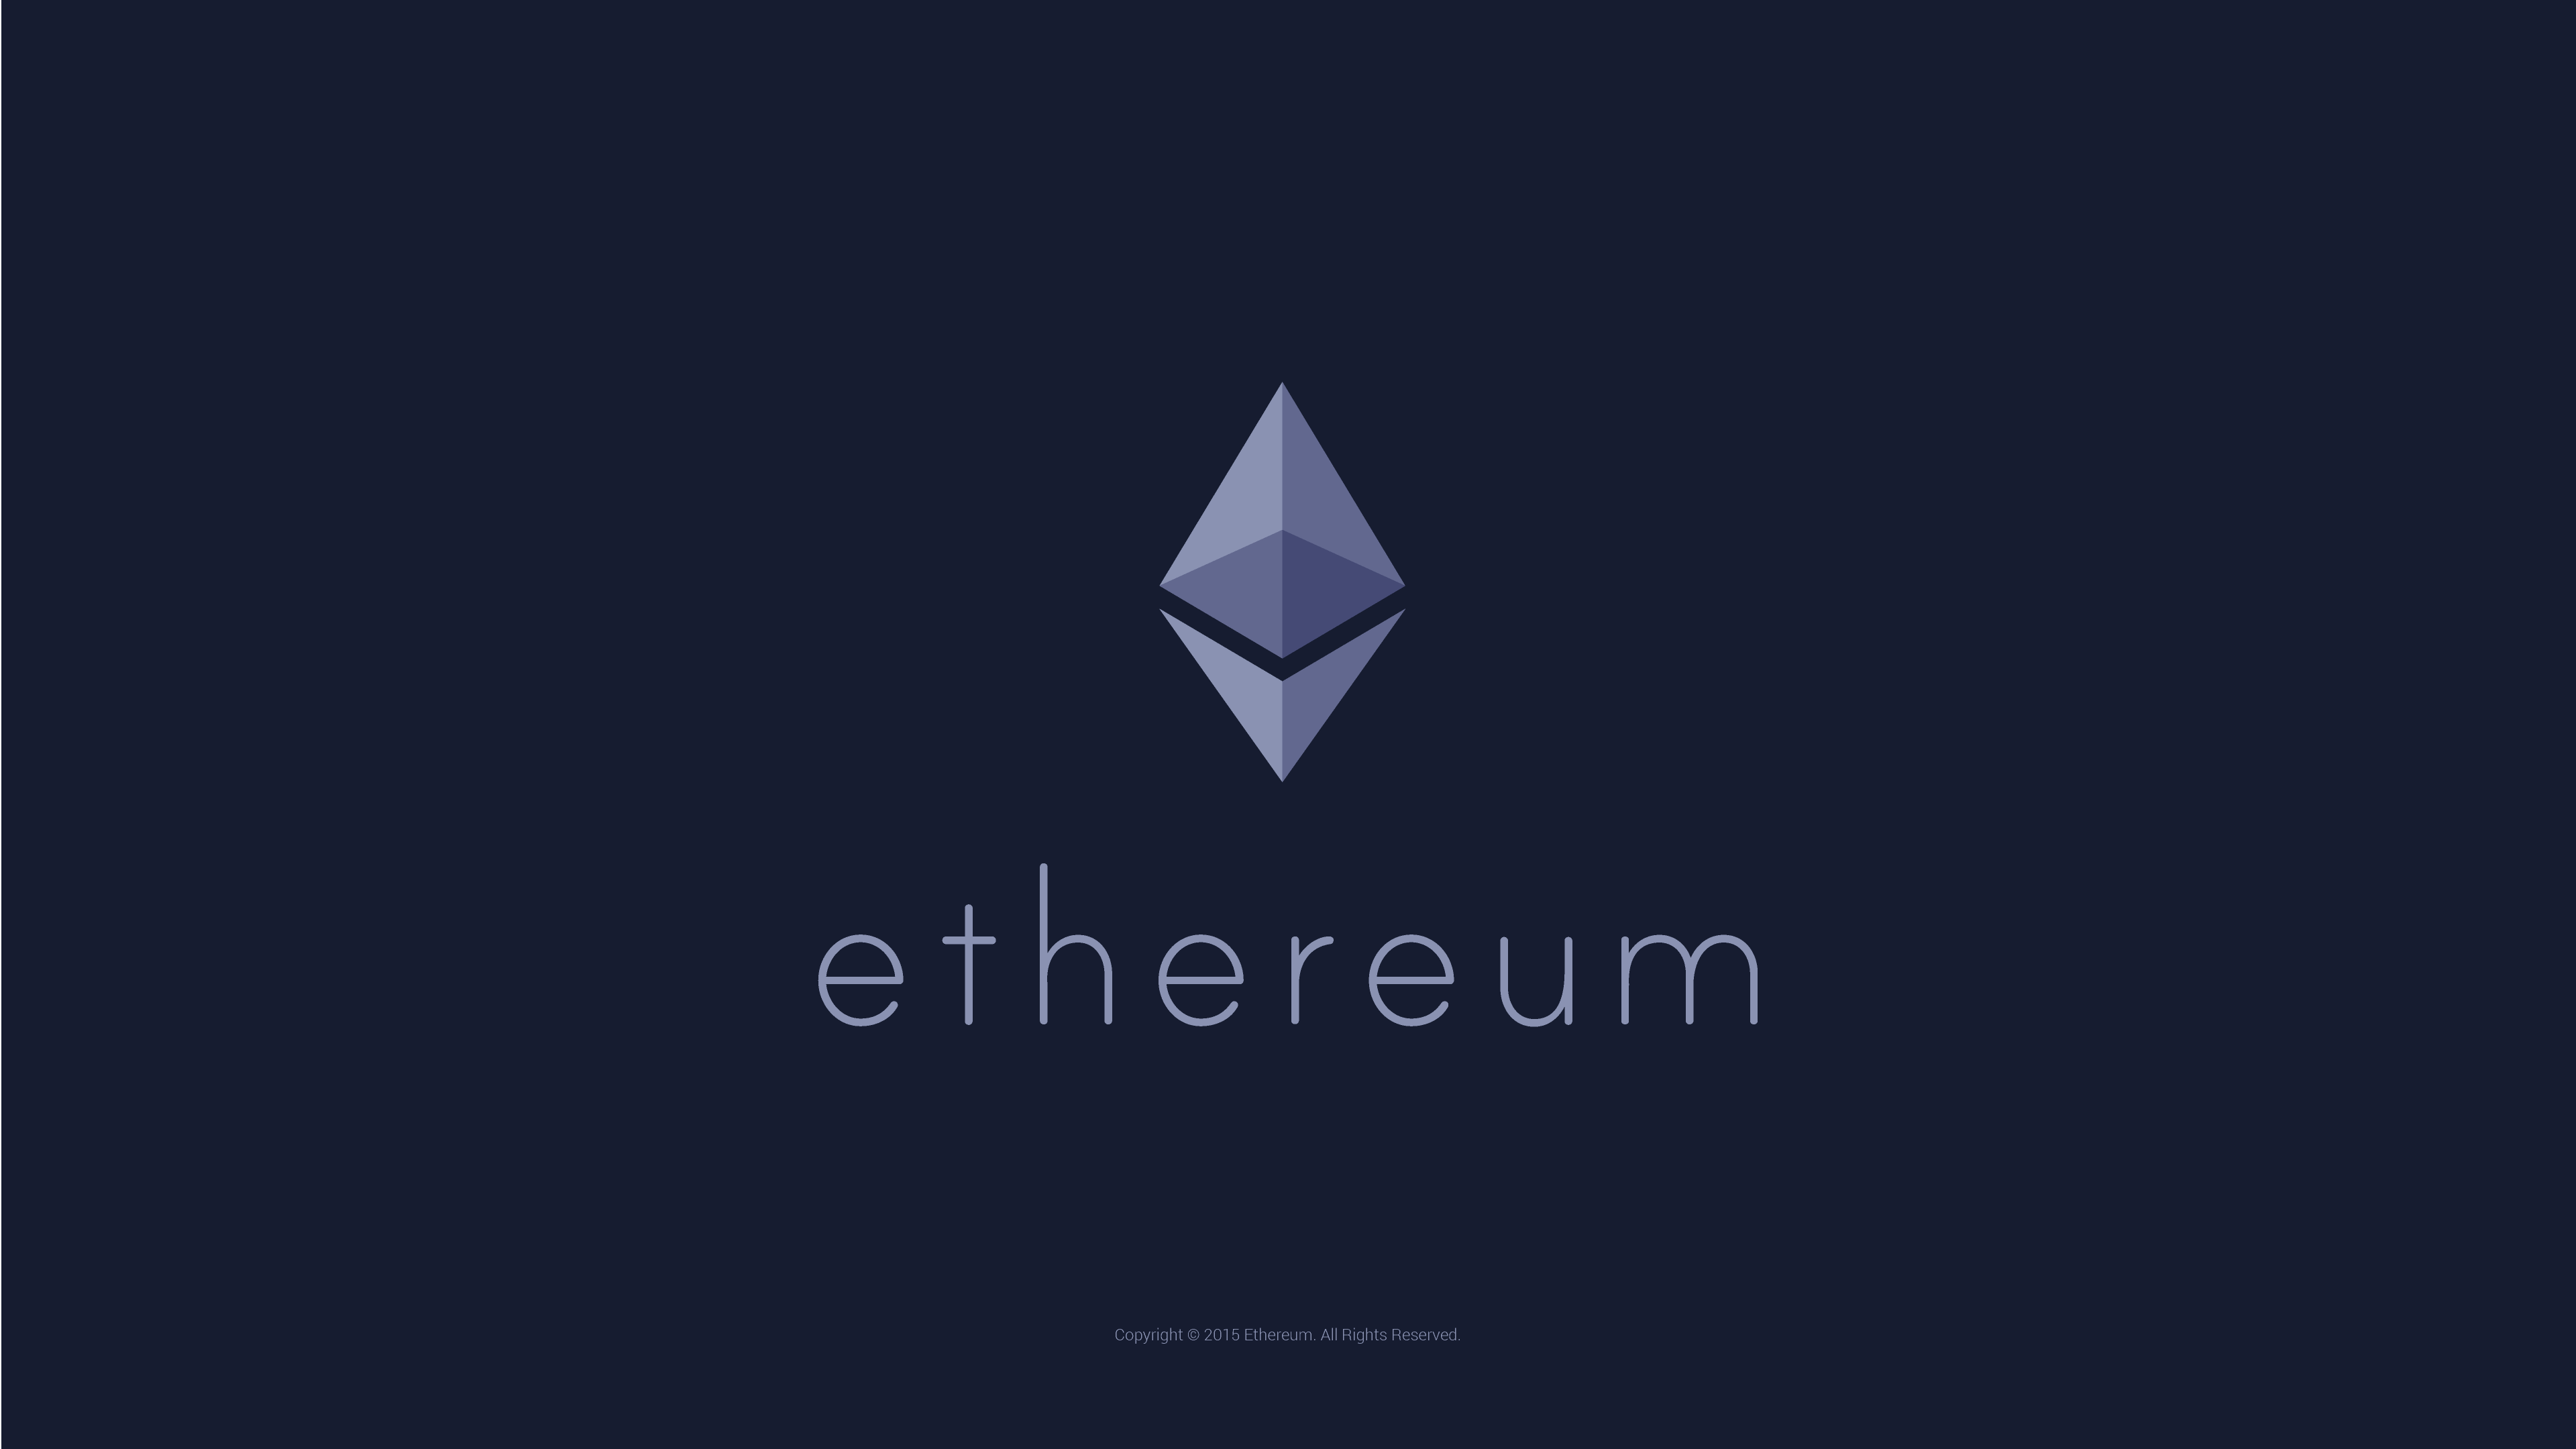 Ethereum Prices Stable Maintains Status Quo   CryptoNewsZ 3840x2160